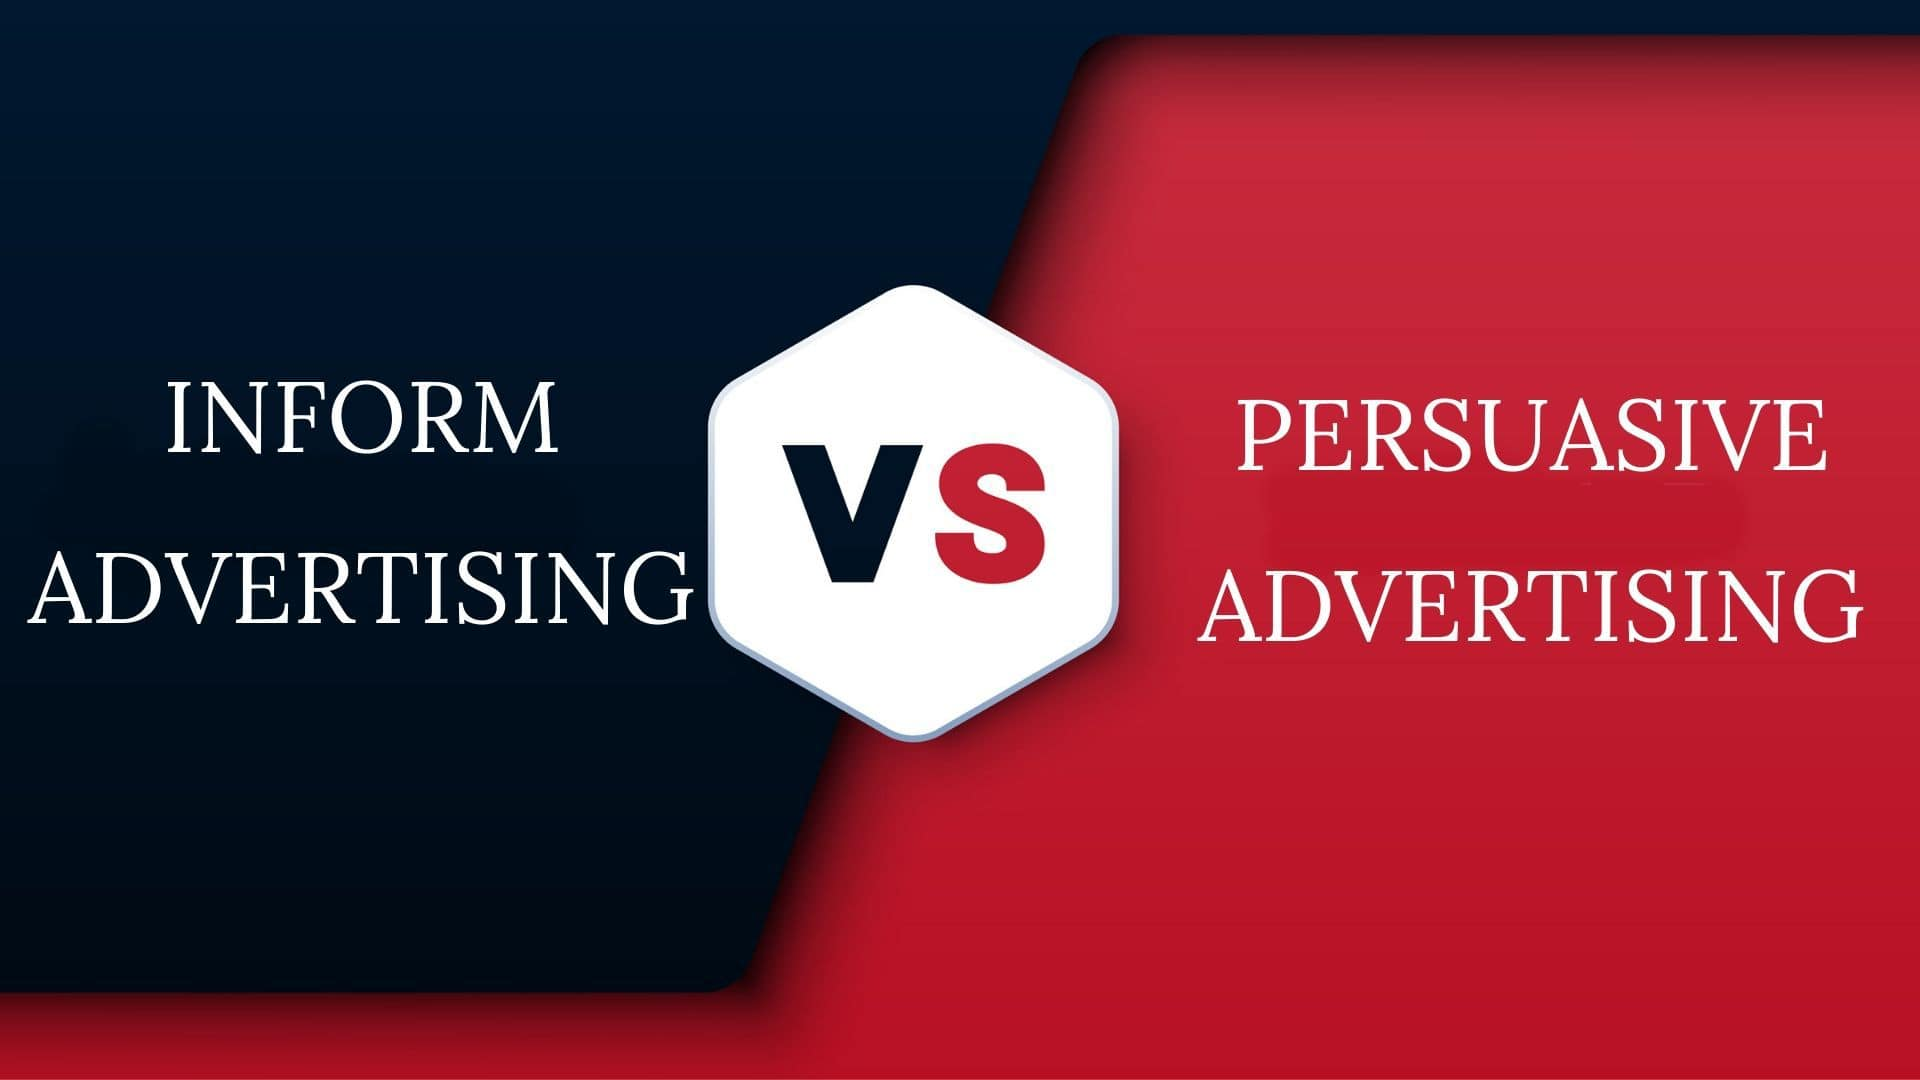 Informative Advertising Vs Persuasive Advertising